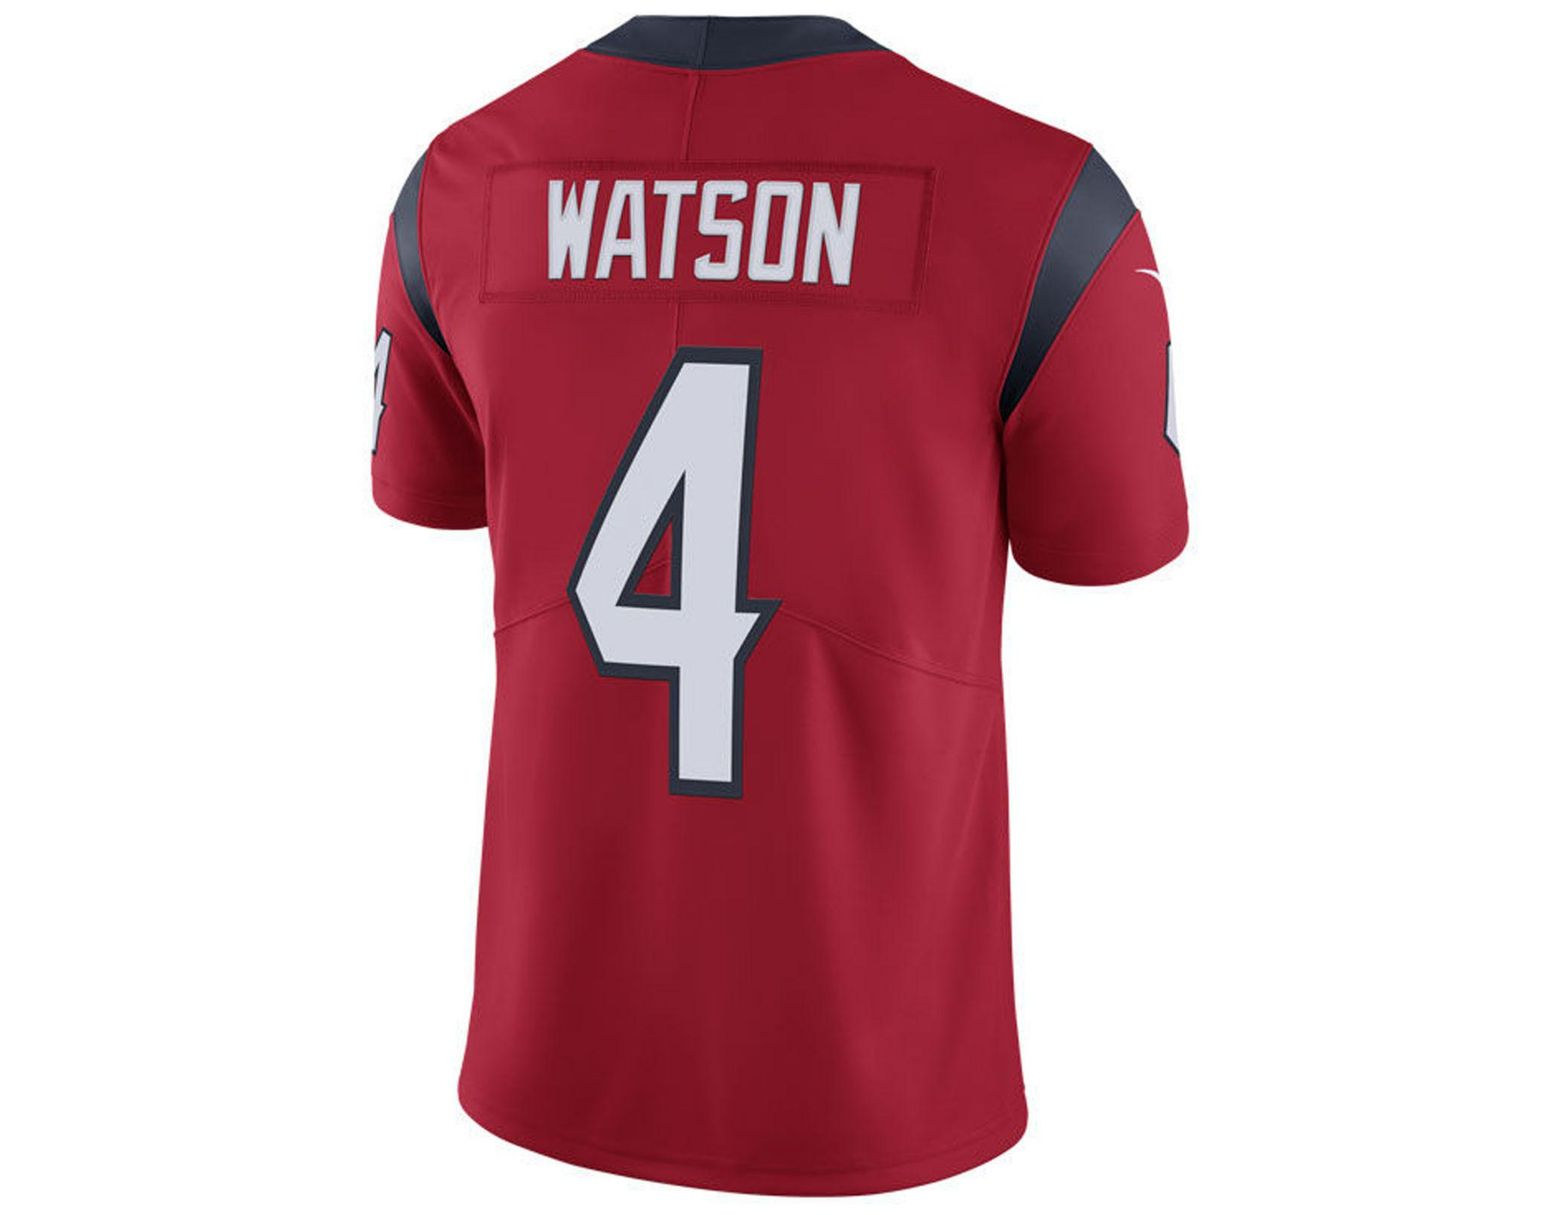 92cd5ea7 Men's Red Deshaun Watson Houston Texans Vapor Untouchable Limited Jersey